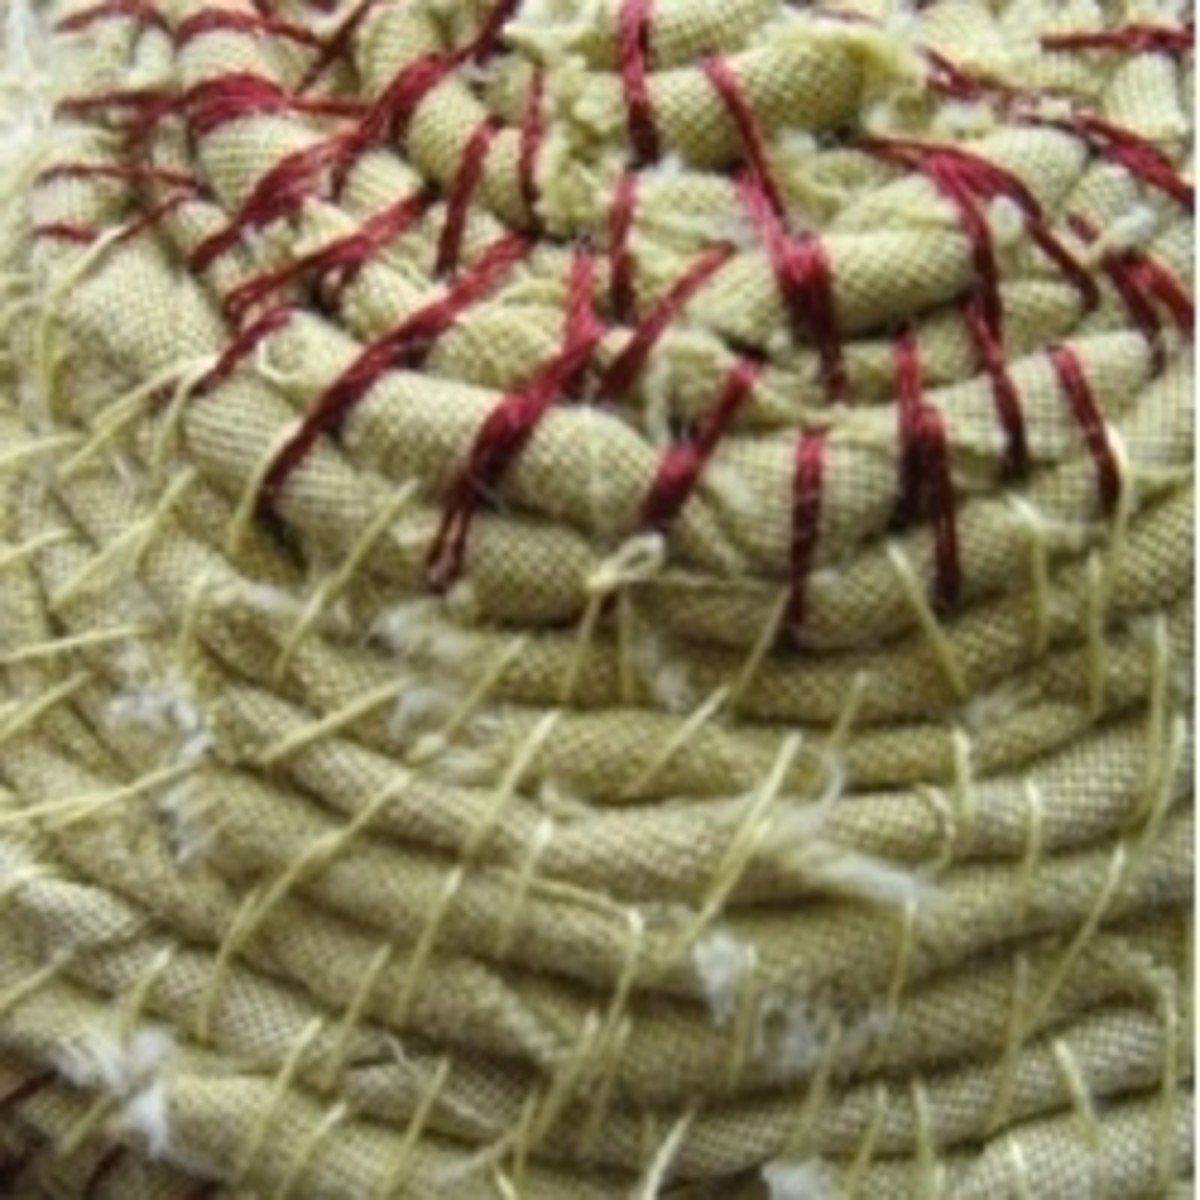 How to Make Coiled Fabric